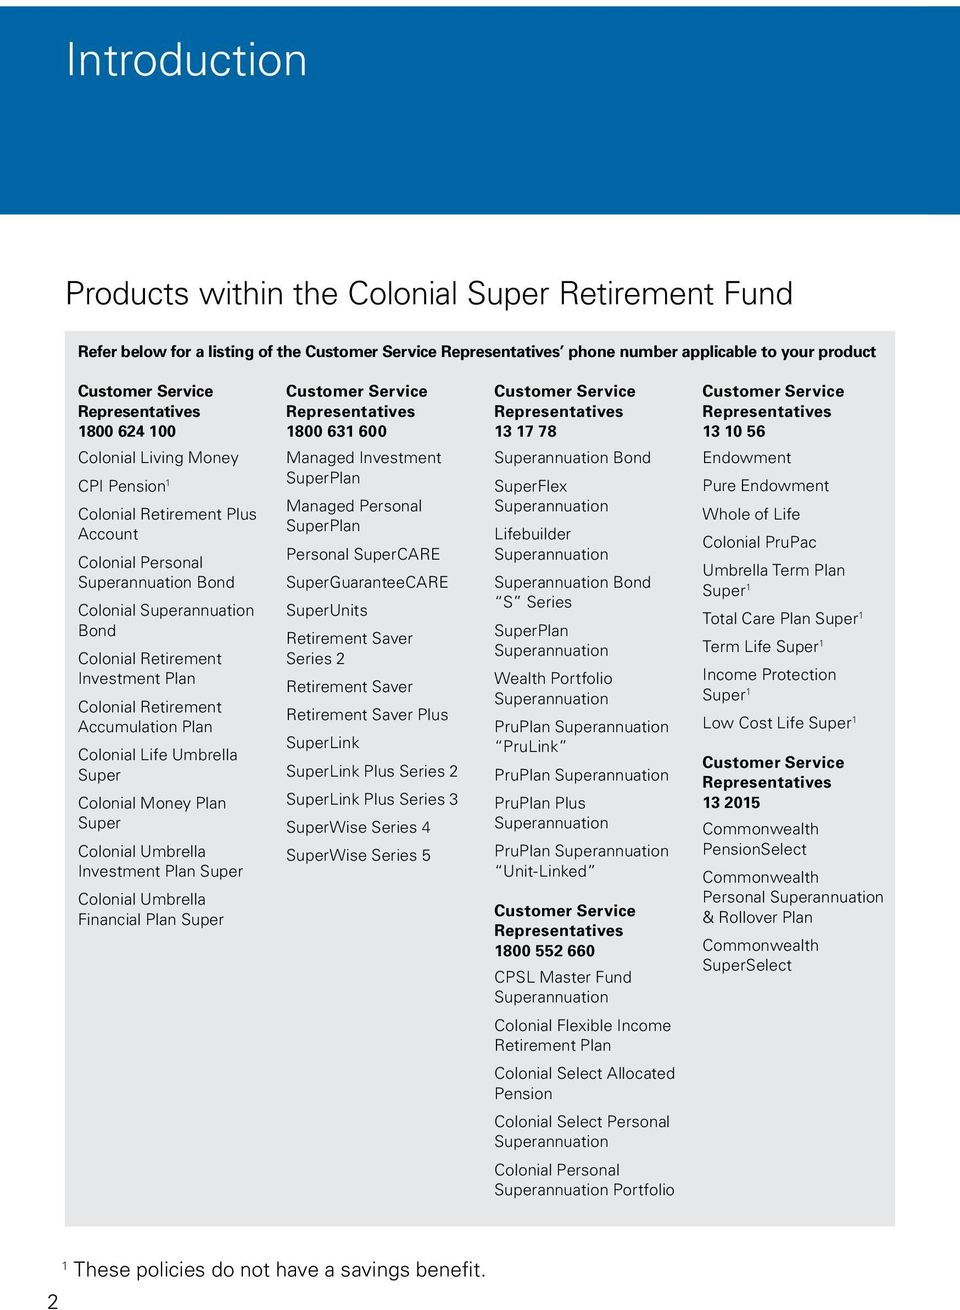 Plan Colonial Retirement Accumulation Plan Colonial Life Umbrella Super Colonial Money Plan Super Colonial Umbrella Investment Plan Super Colonial Umbrella Financial Plan Super Customer Service